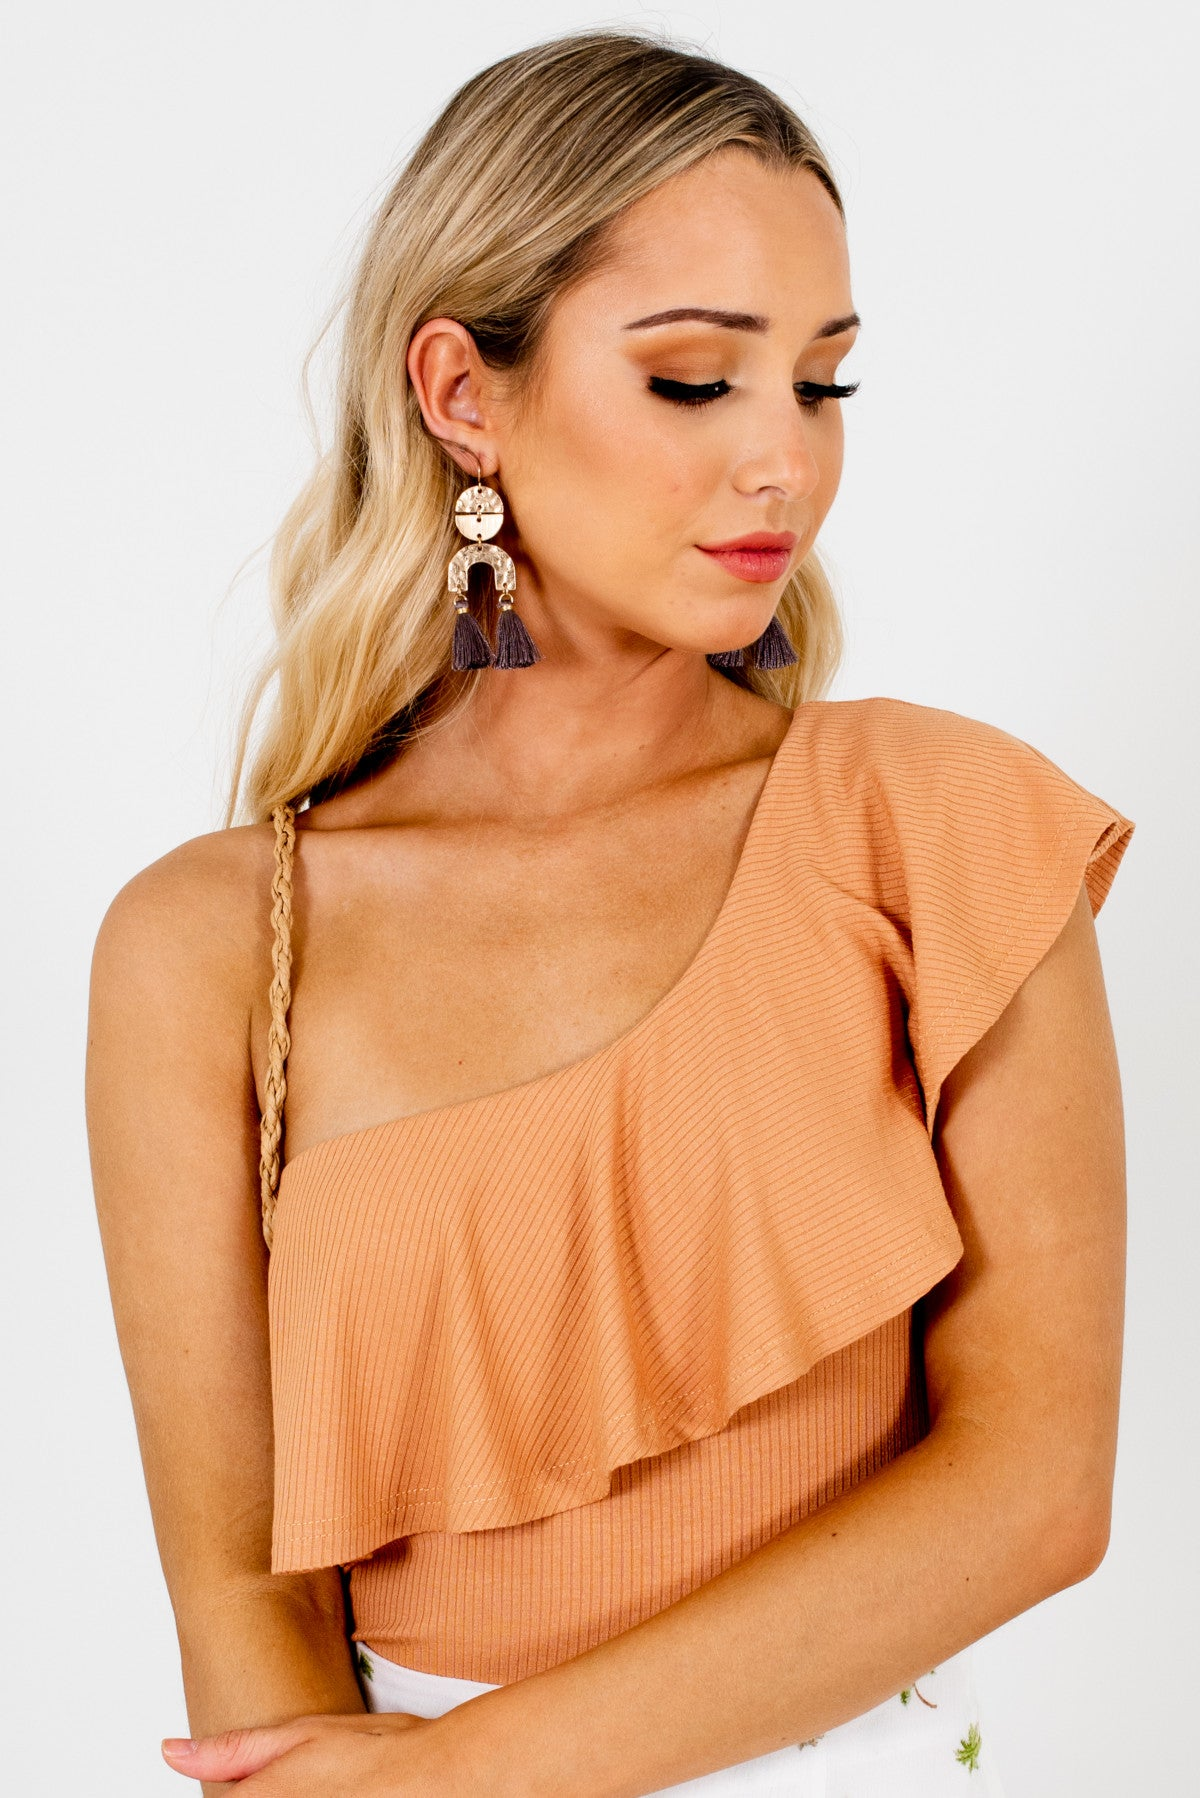 Muted Orange One Shoulder Style Boutique Bodysuits for Women